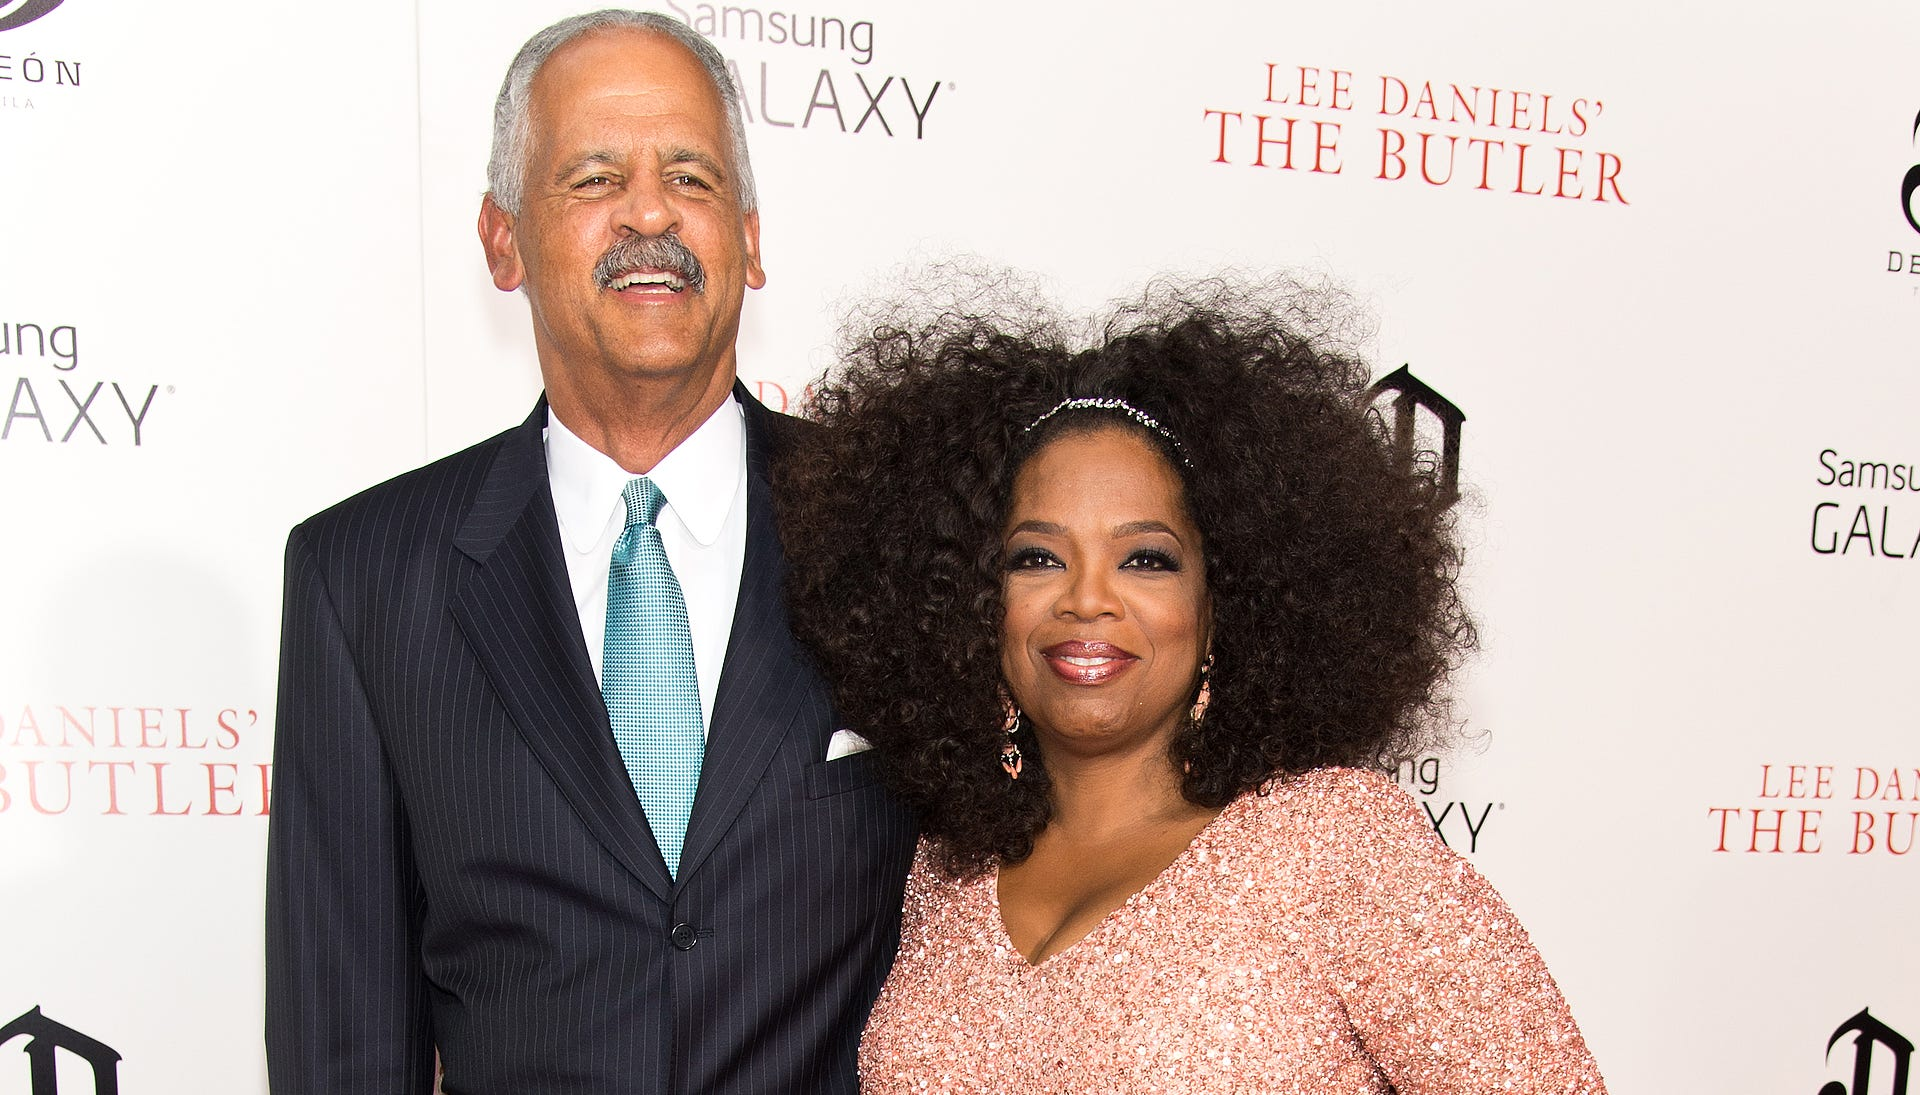 Oprah makes a glamorous -- and rare -- red carpet appearance with longtime love Stedman Graham for the NYC premiere of 'The Butler' on Aug. 5. She's in a blush sequined dress and coordinating clutch. And, oh yeah, she happens to be dripping in Lorraine Schwartz jewels.